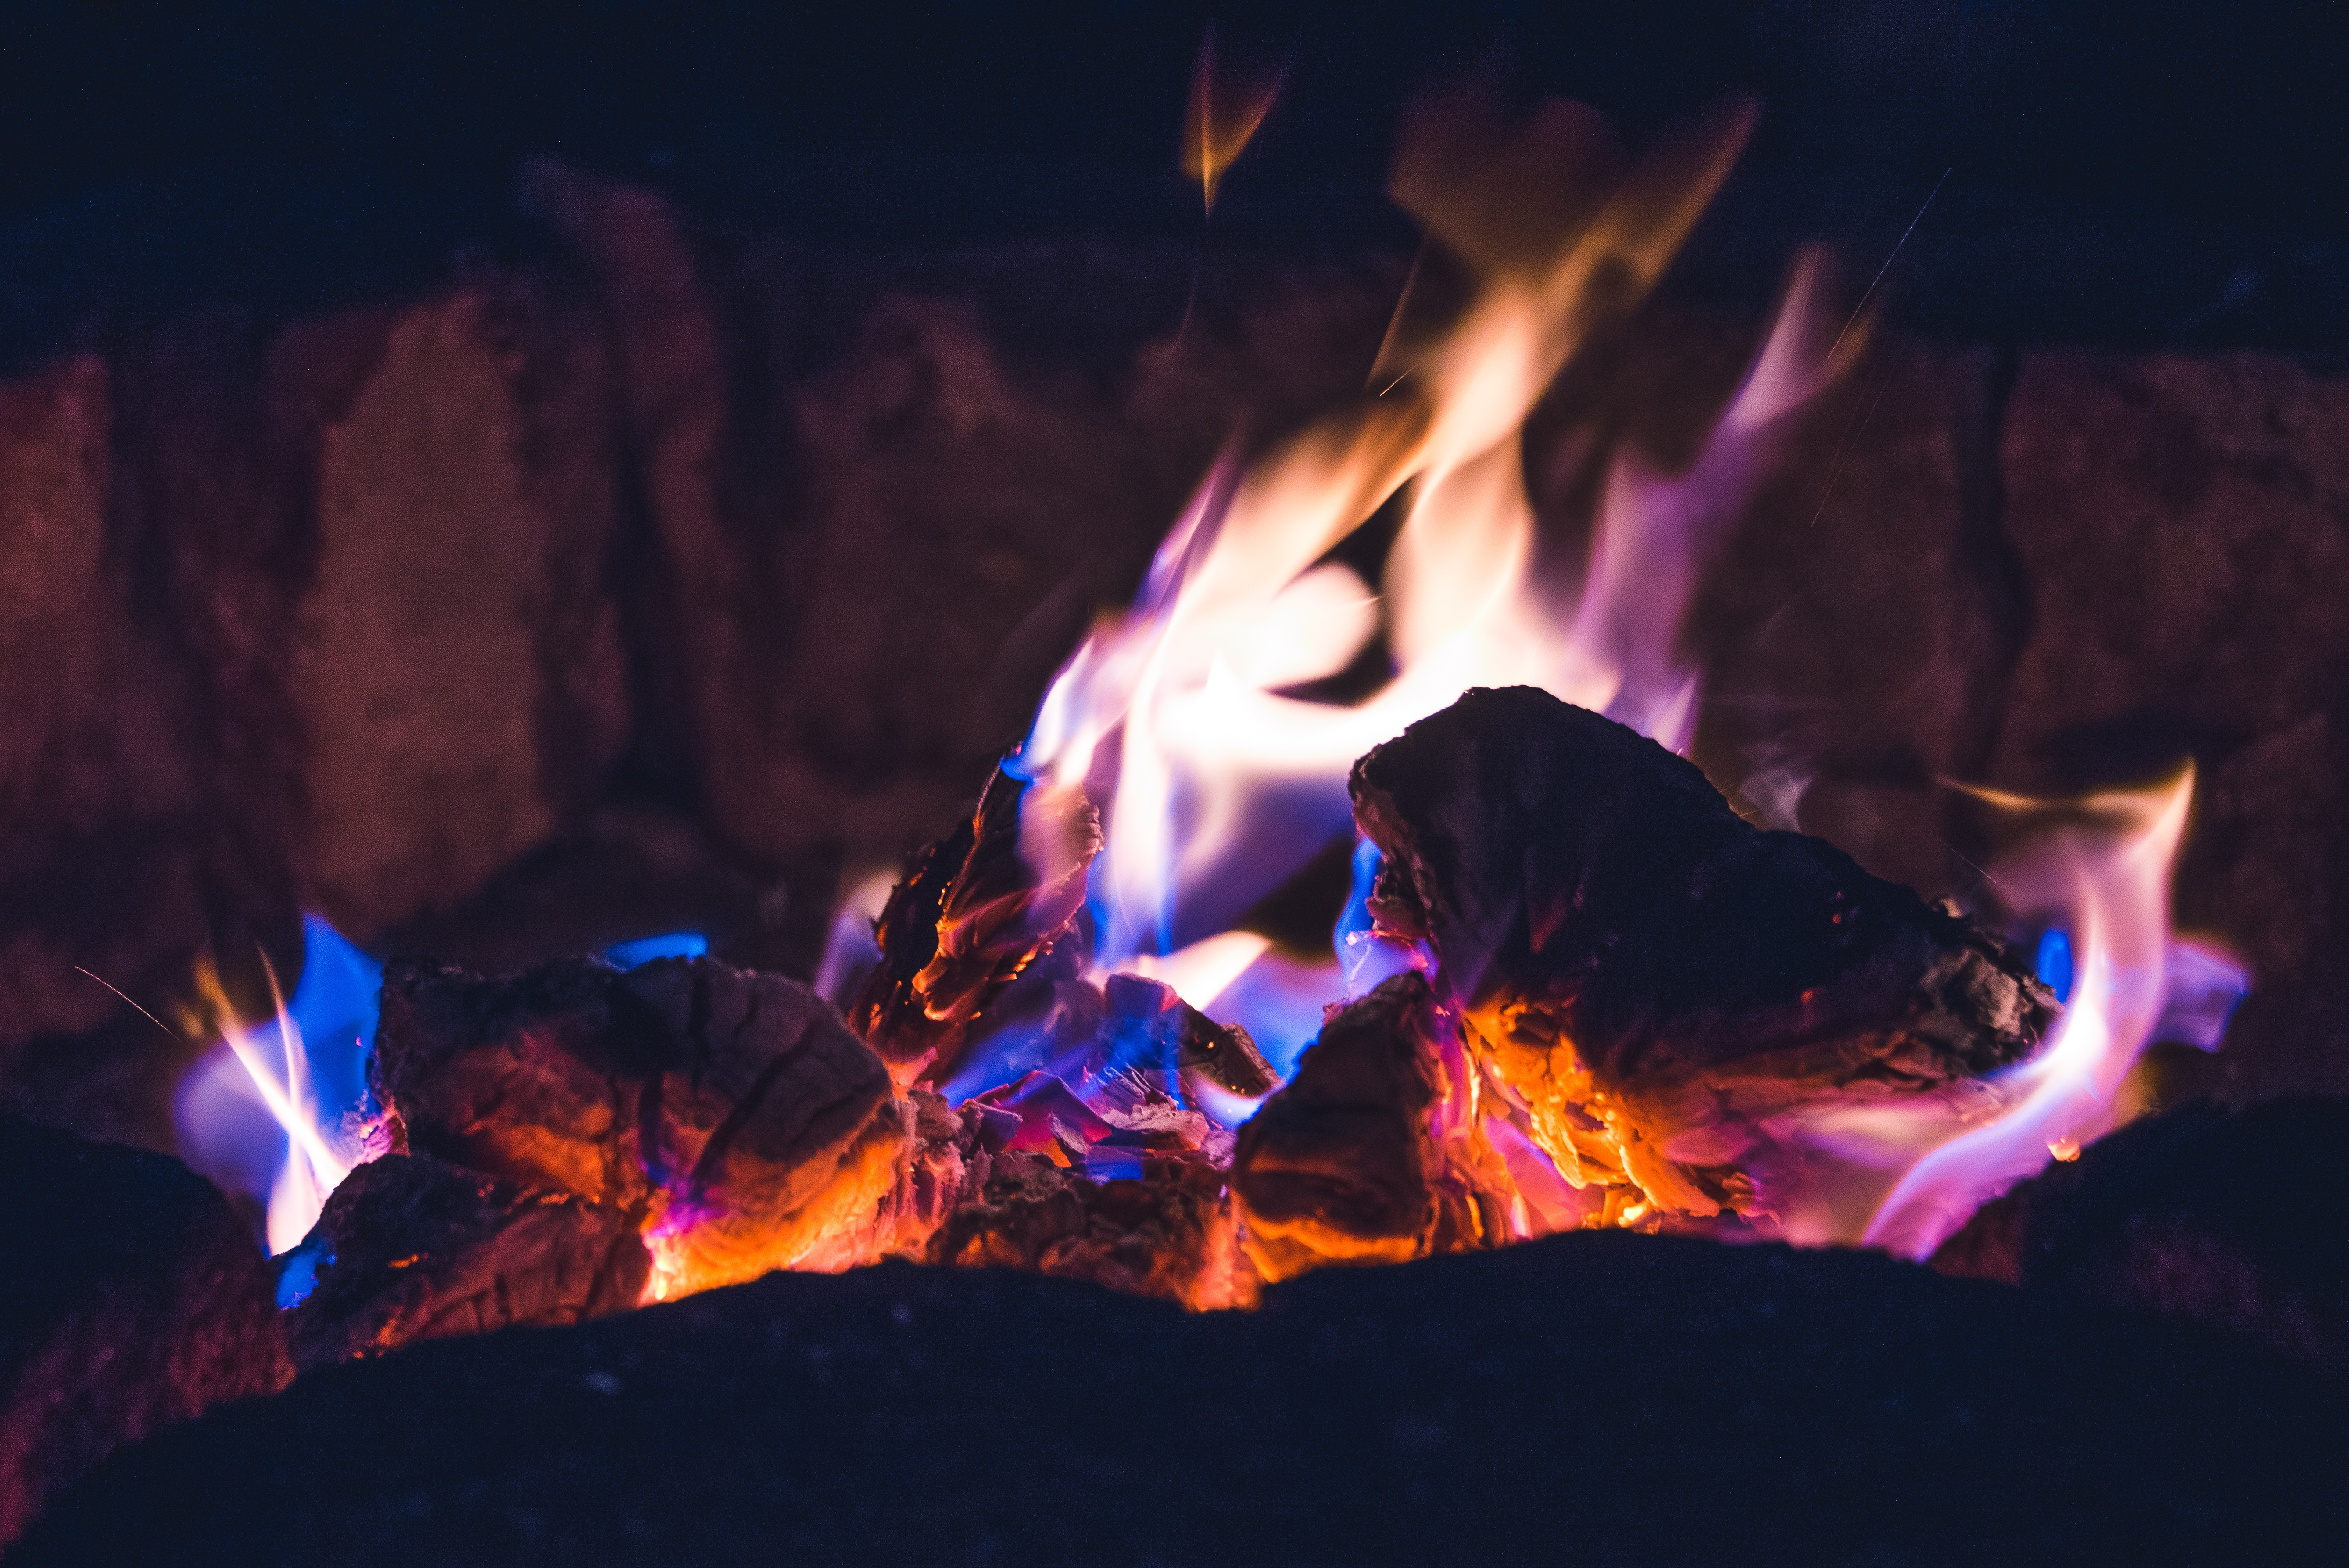 109794 Screensavers and Wallpapers Bonfire for phone. Download Fire, Bonfire, Dark, Shine, Light, Flame, Angle, Corner, Ash pictures for free